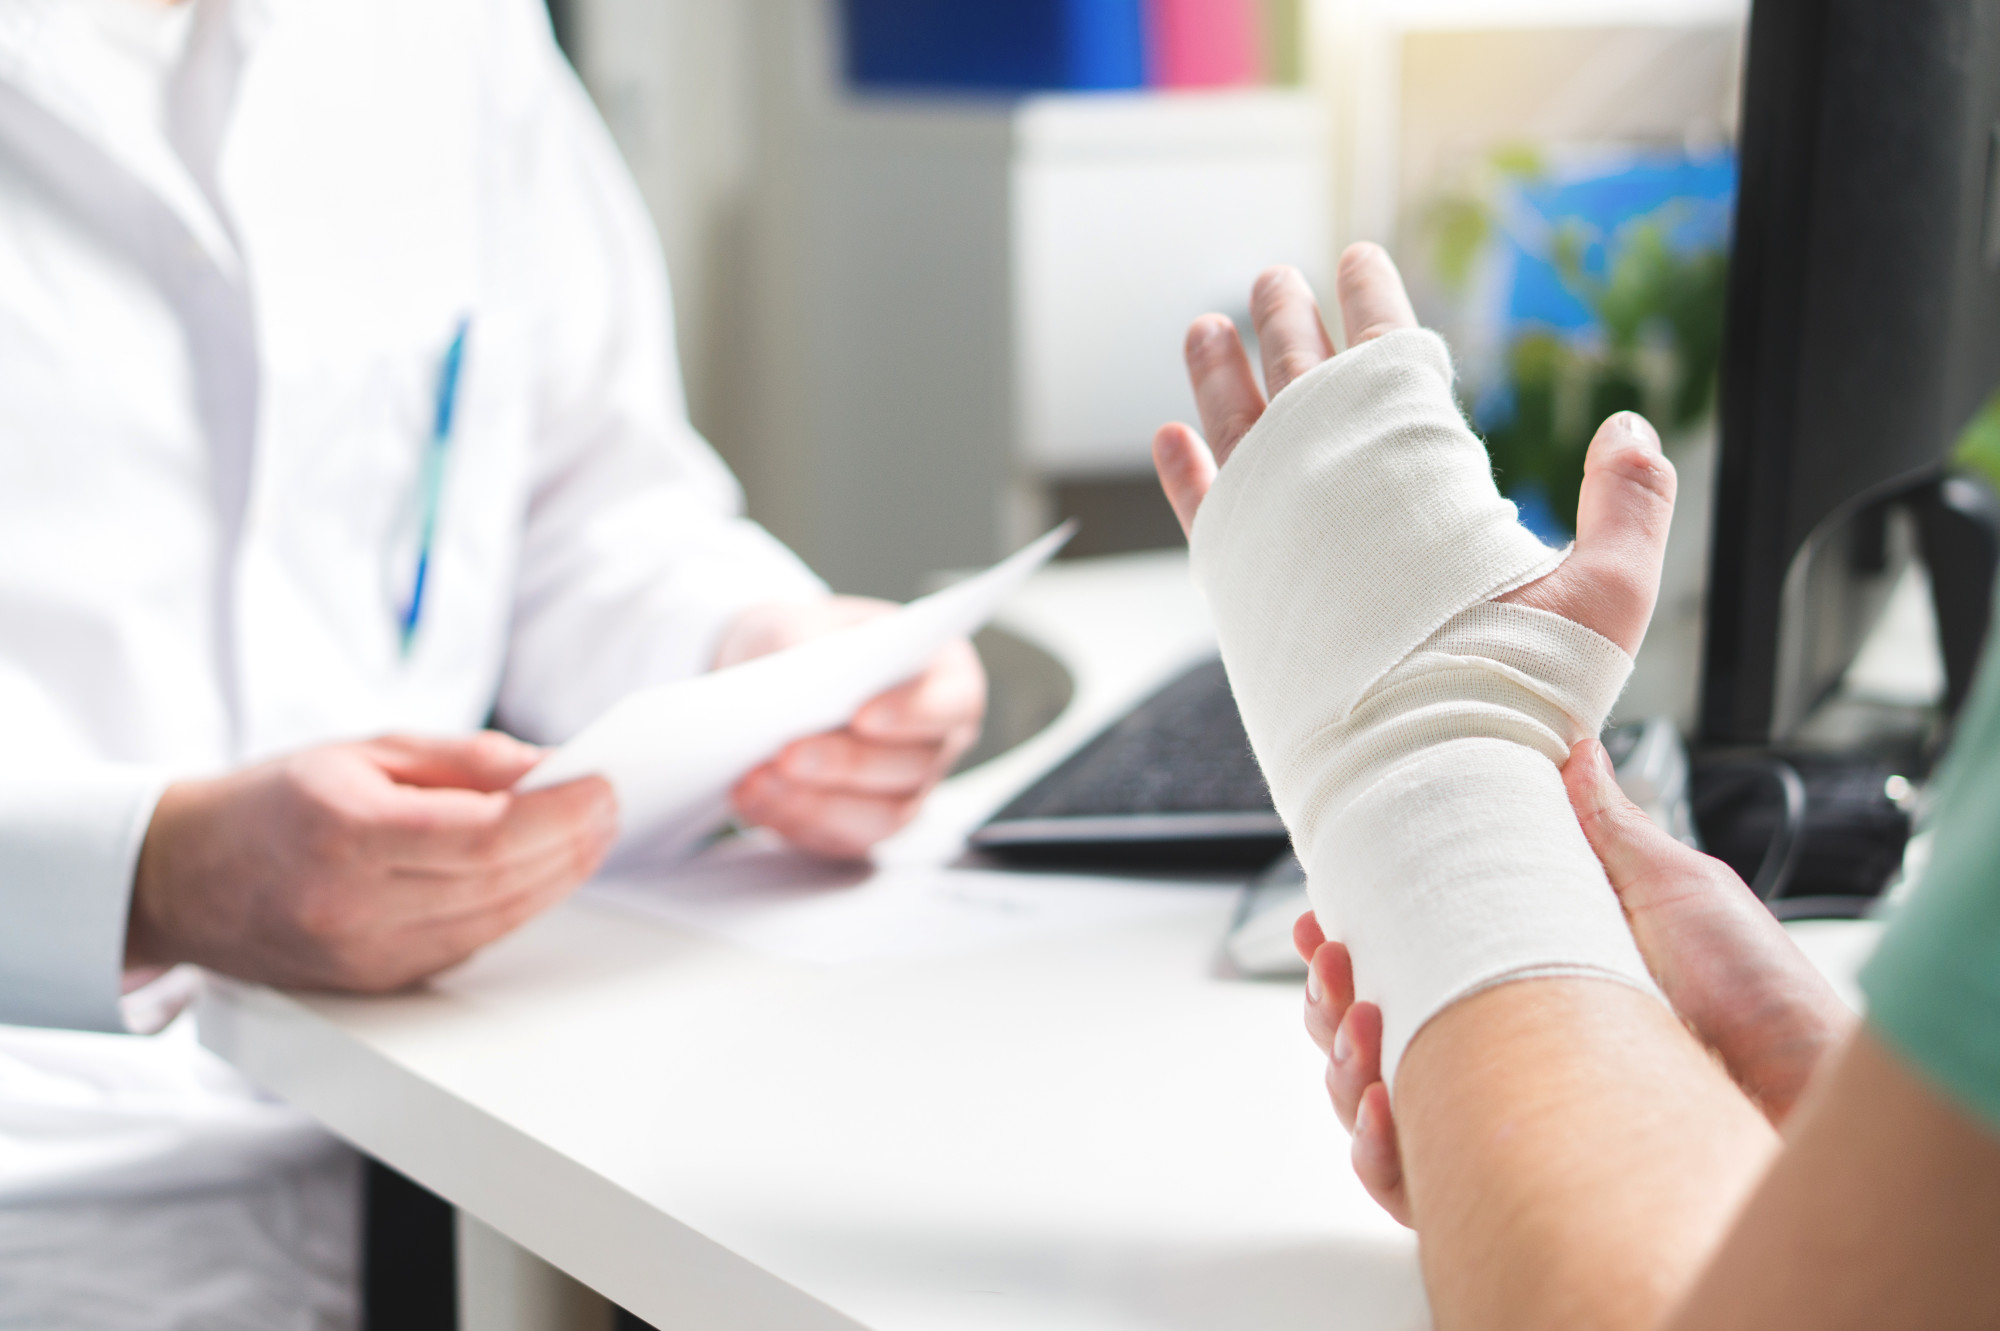 Should You Use a Wrist Splint for Carpal Tunnel?